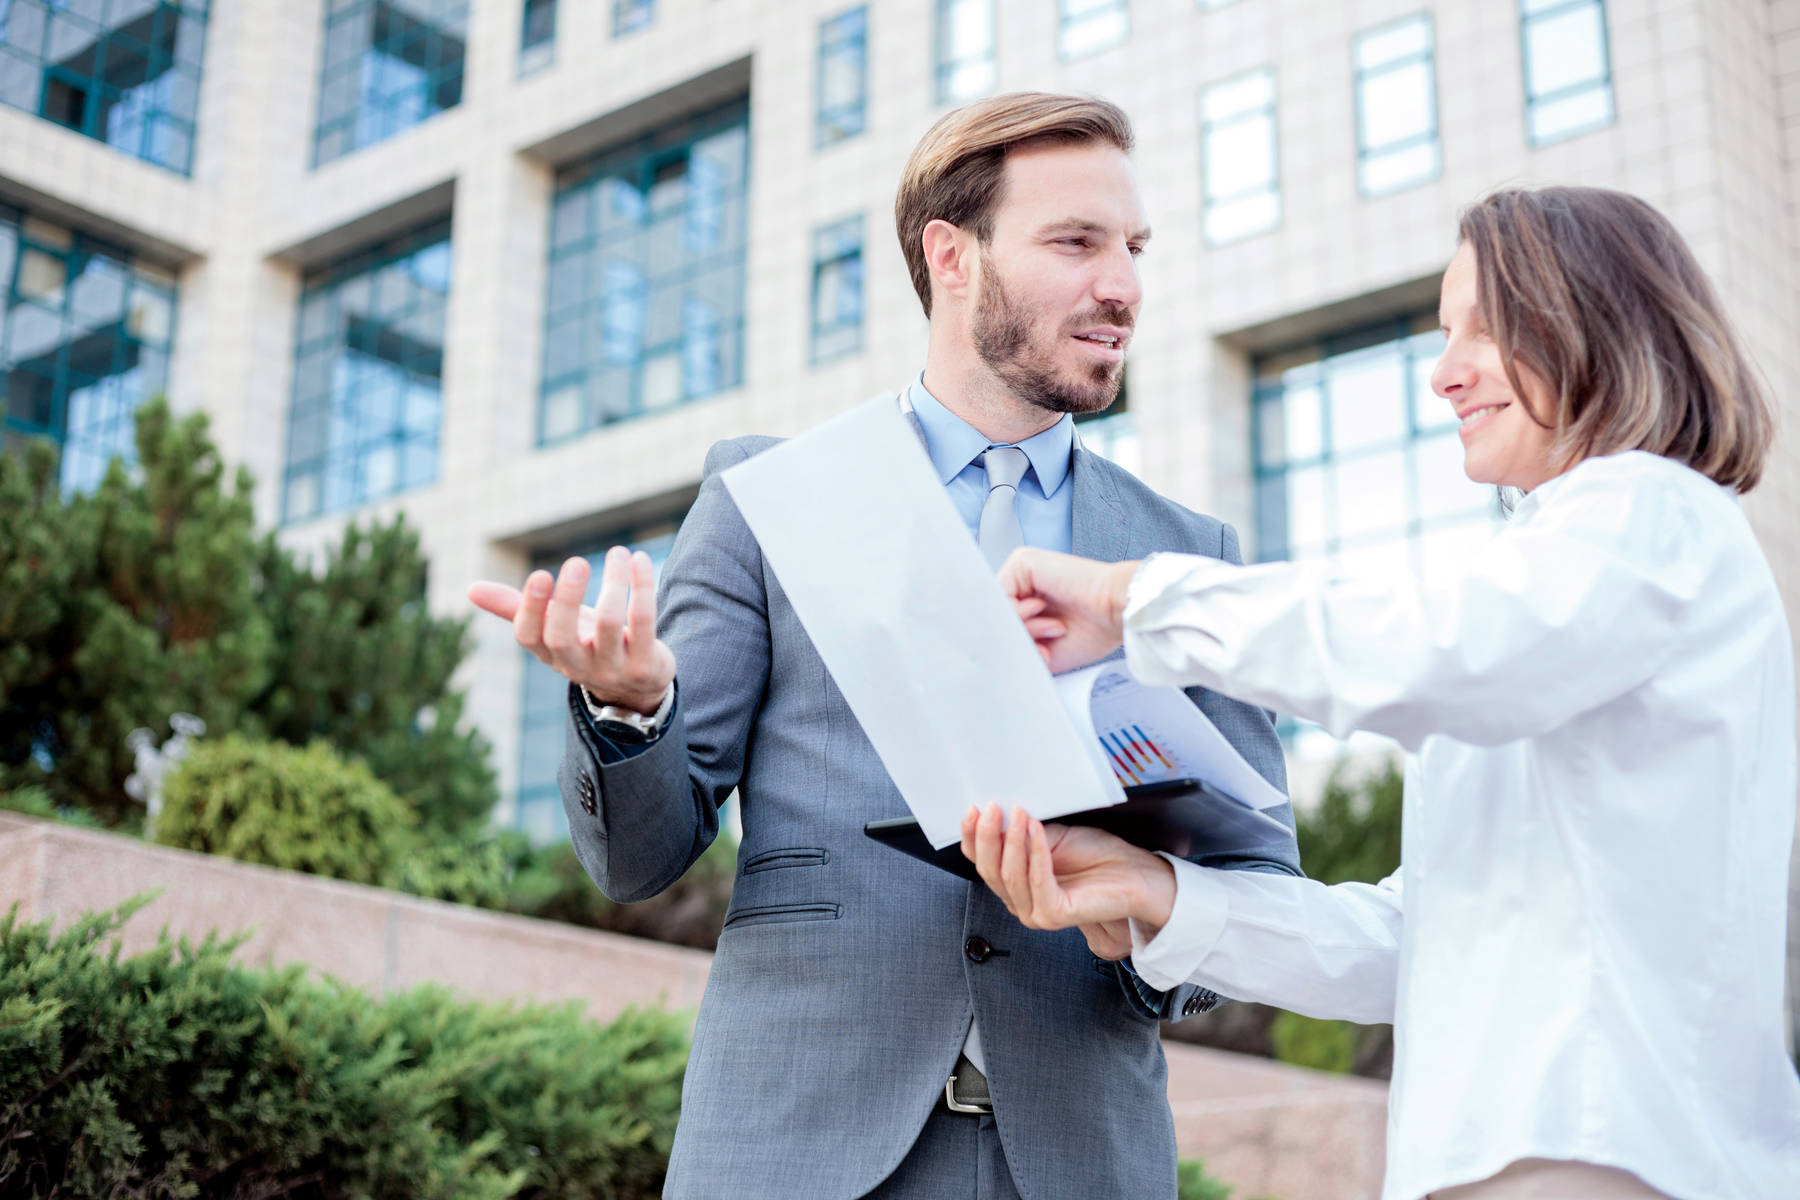 Know These Facts To Know Your Real Estate Agents Better